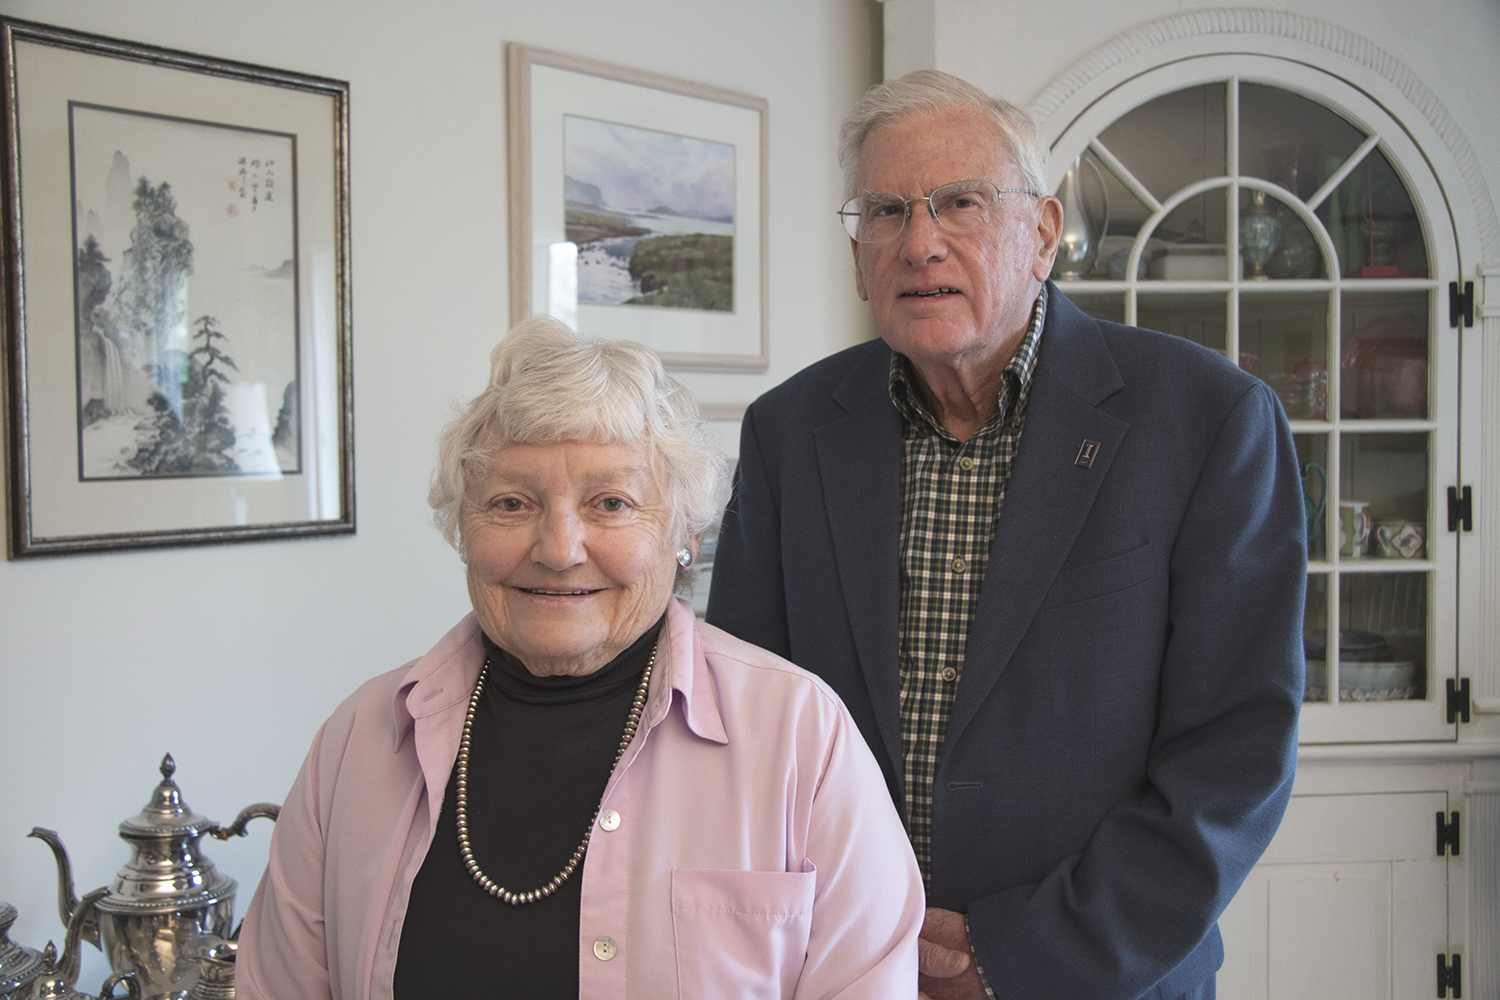 Joan and Peter Hood, 2019. Photo by Julia Nucci Kelly.